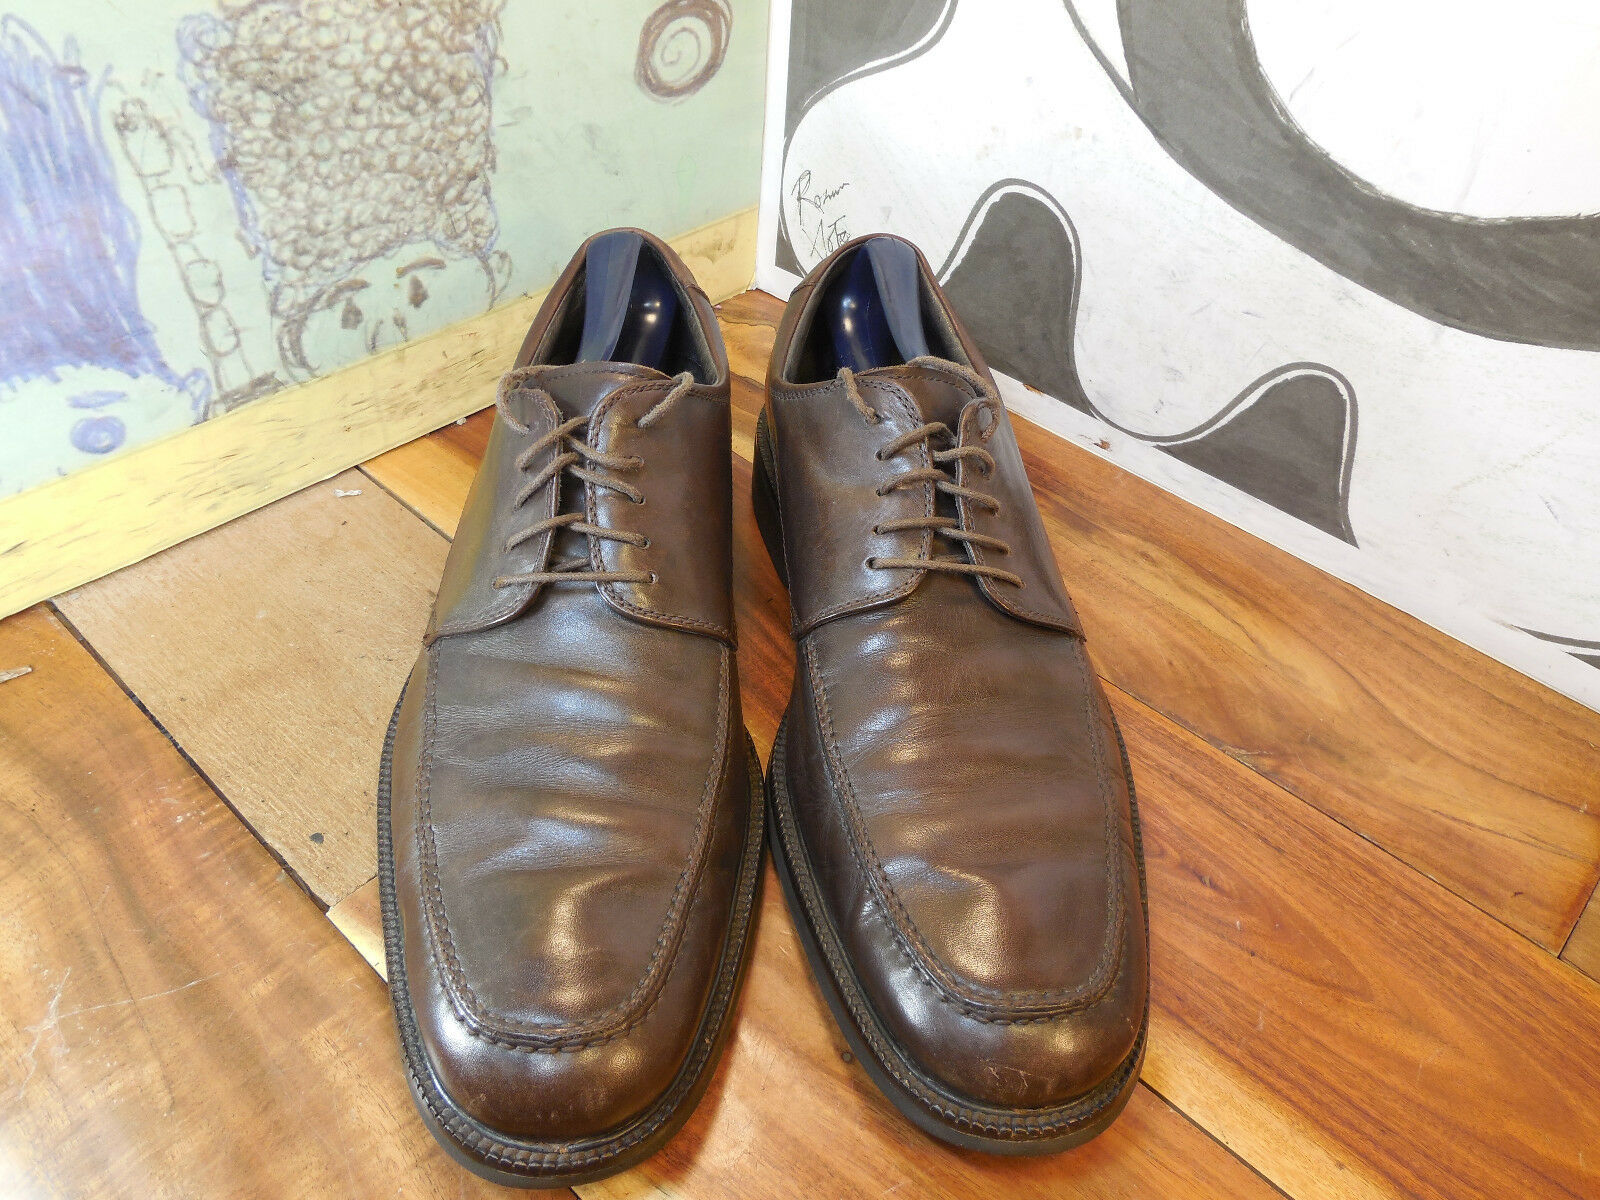 Men's/Women's Johnston & Murphy Brown Leather Oxfords Men's 10.5M choose  for you to choose 10.5M Comfortable touch Different styles VG383 5e6ecb